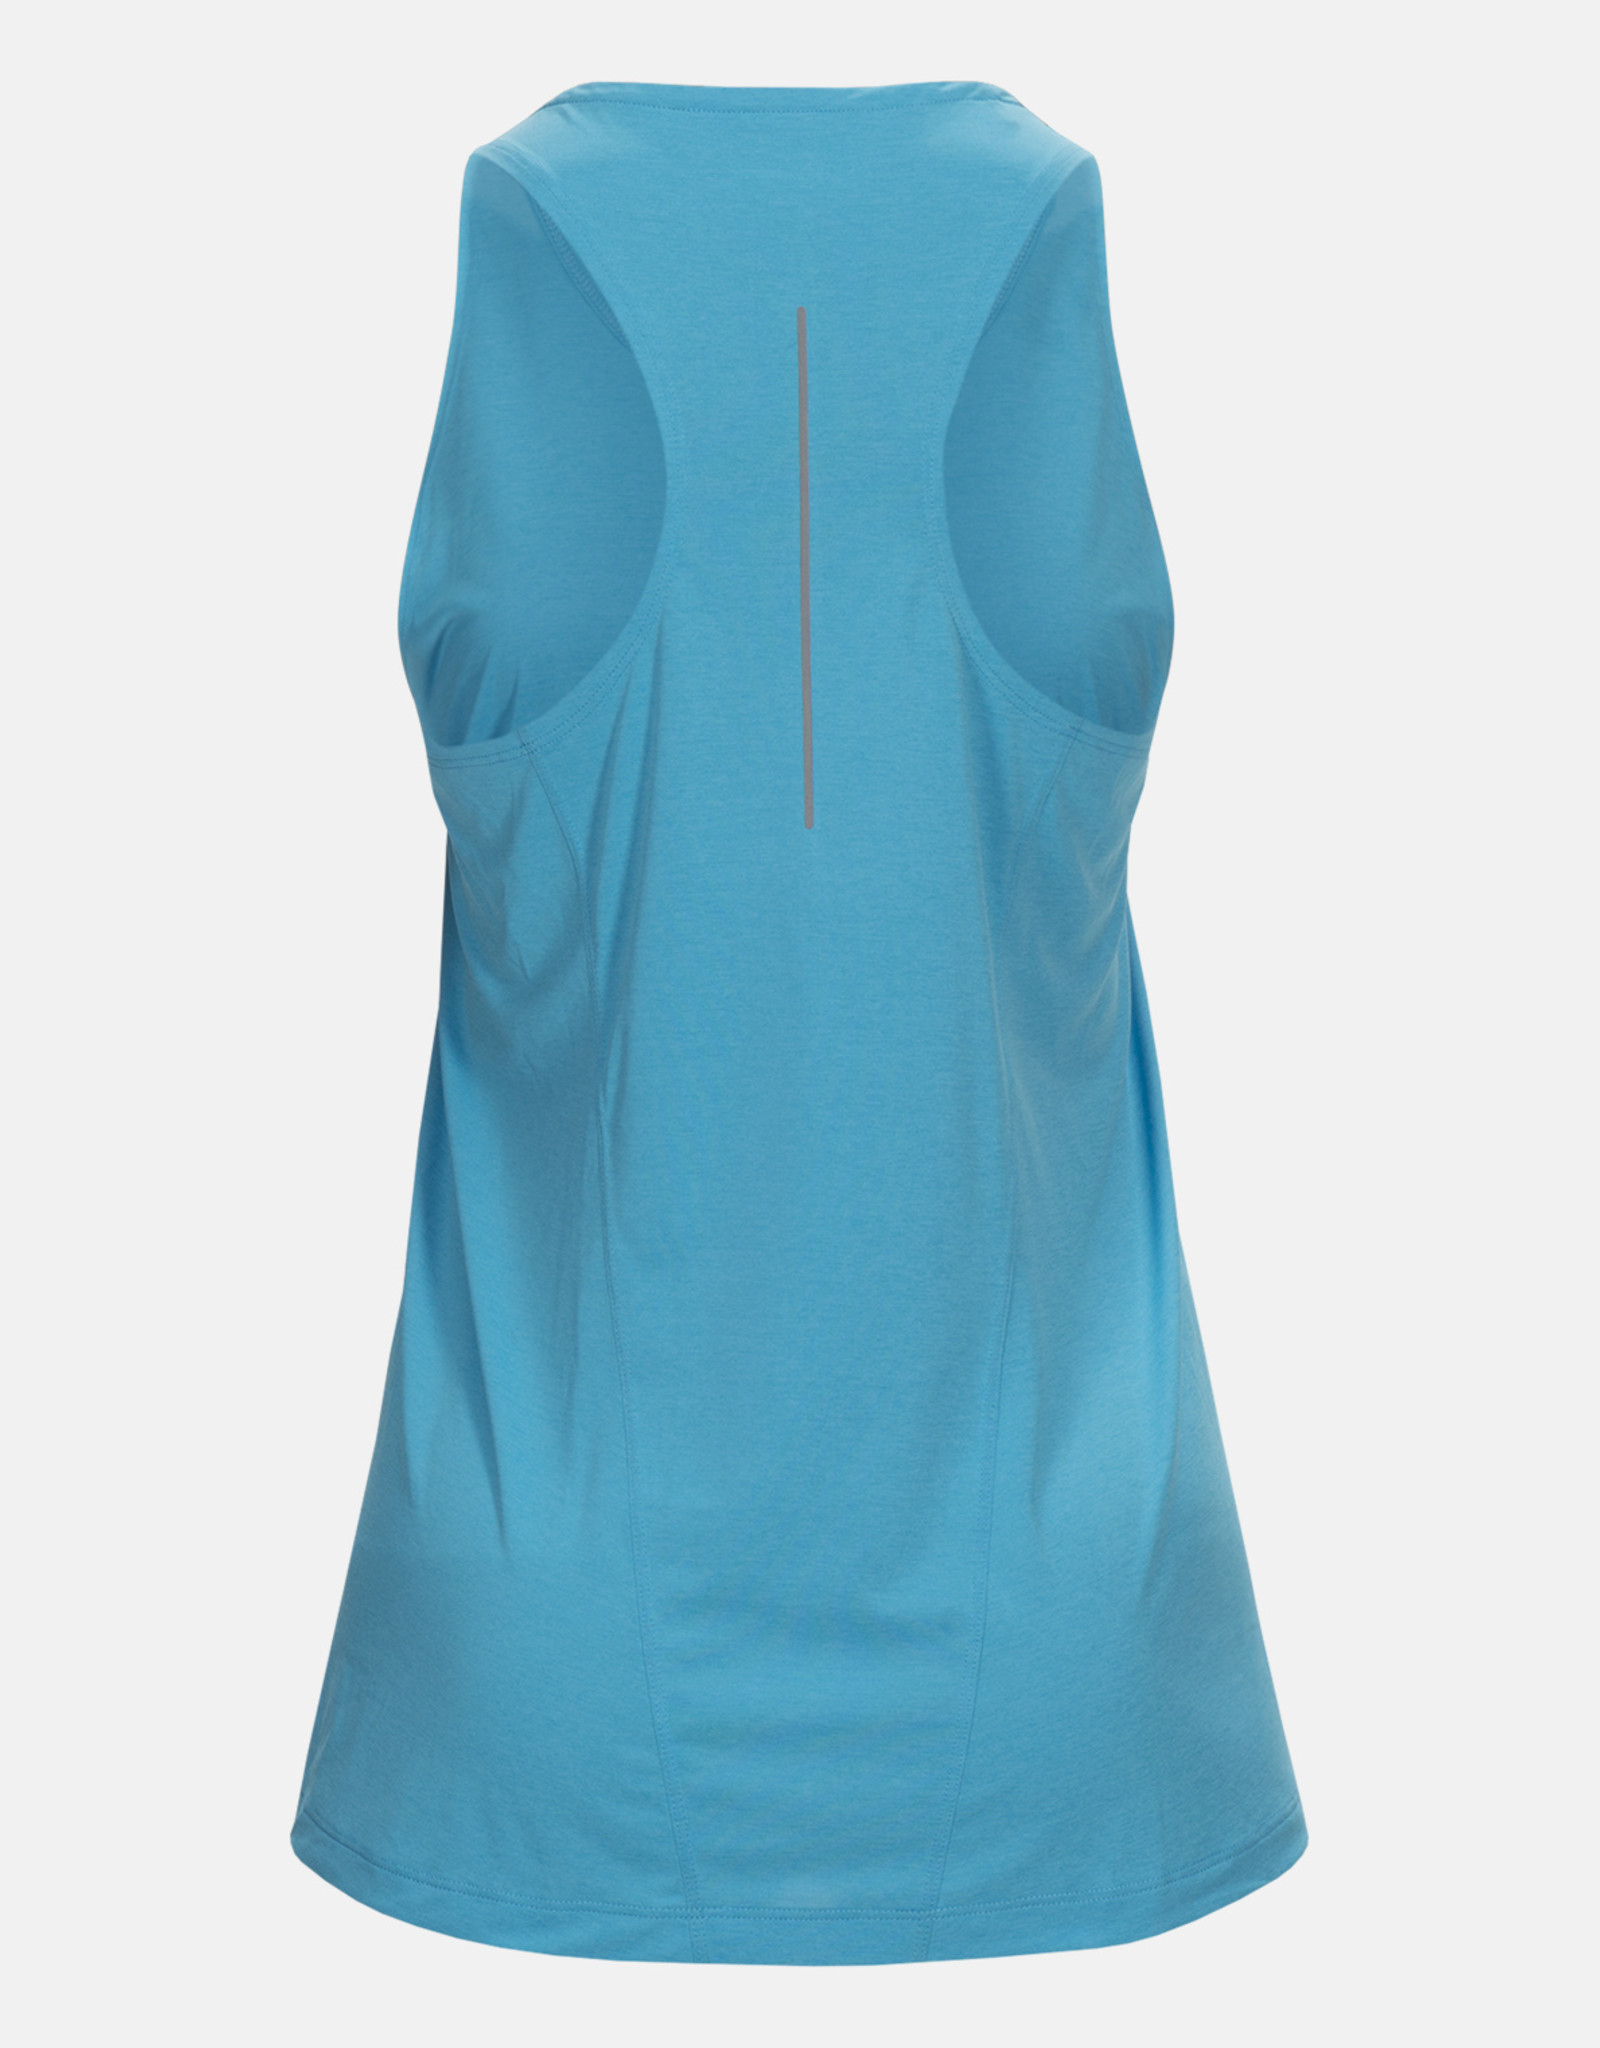 Peak Performance Peak Performance Women's Fly Tank - S2019